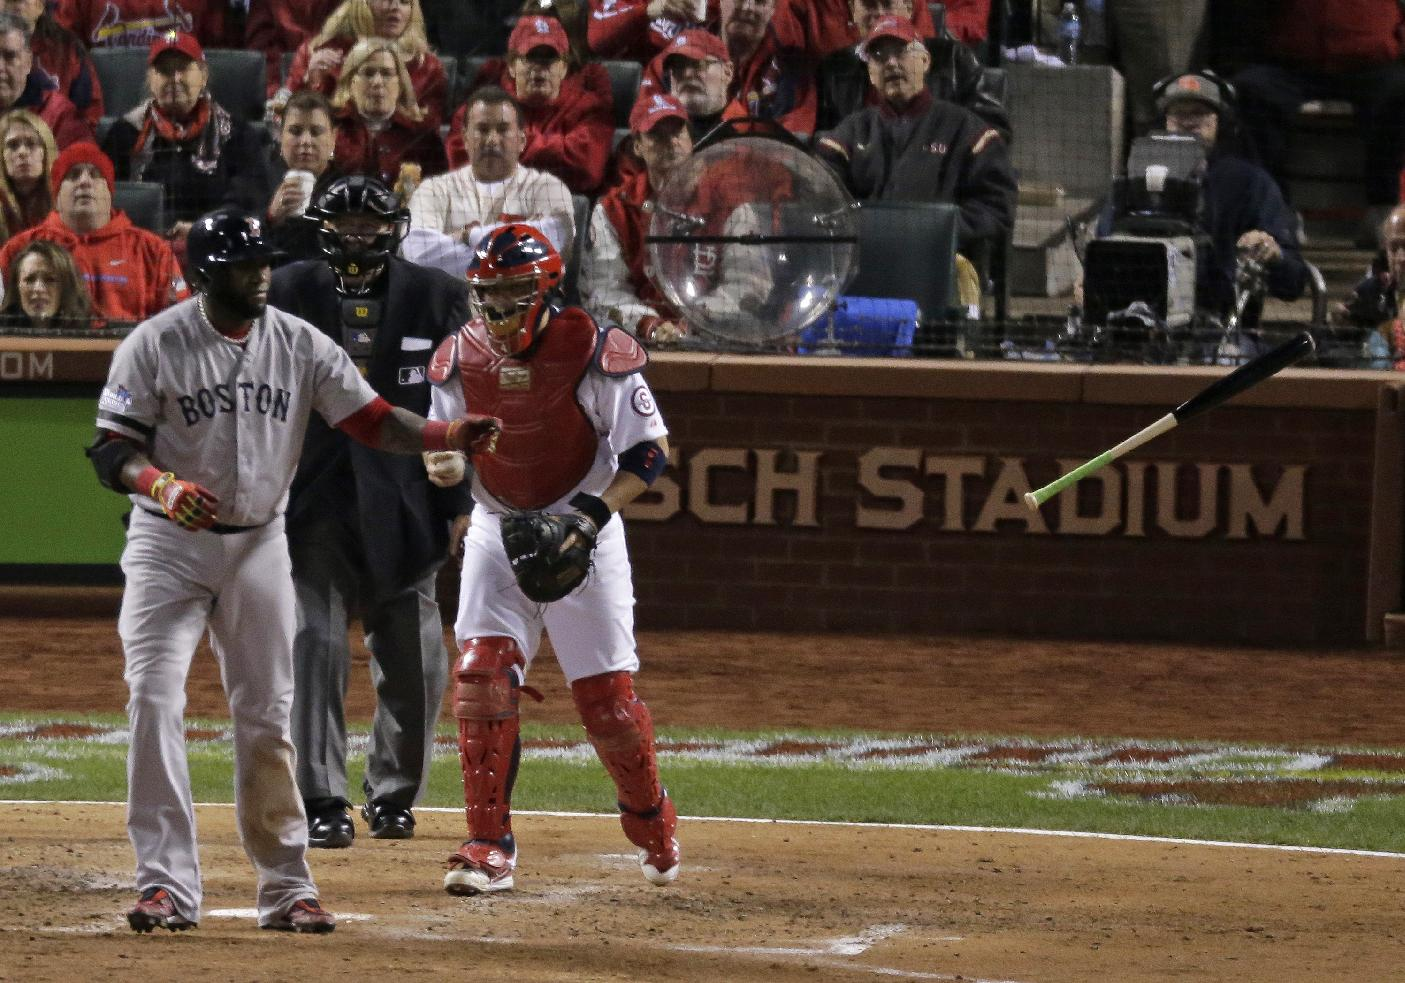 Boston Red Sox's David Ortiz tosses his bat after being walked during the sixth inning of Game 4 of baseball's World Series against the St. Louis Cardinals Sunday, Oct. 27, 2013, in St. Louis